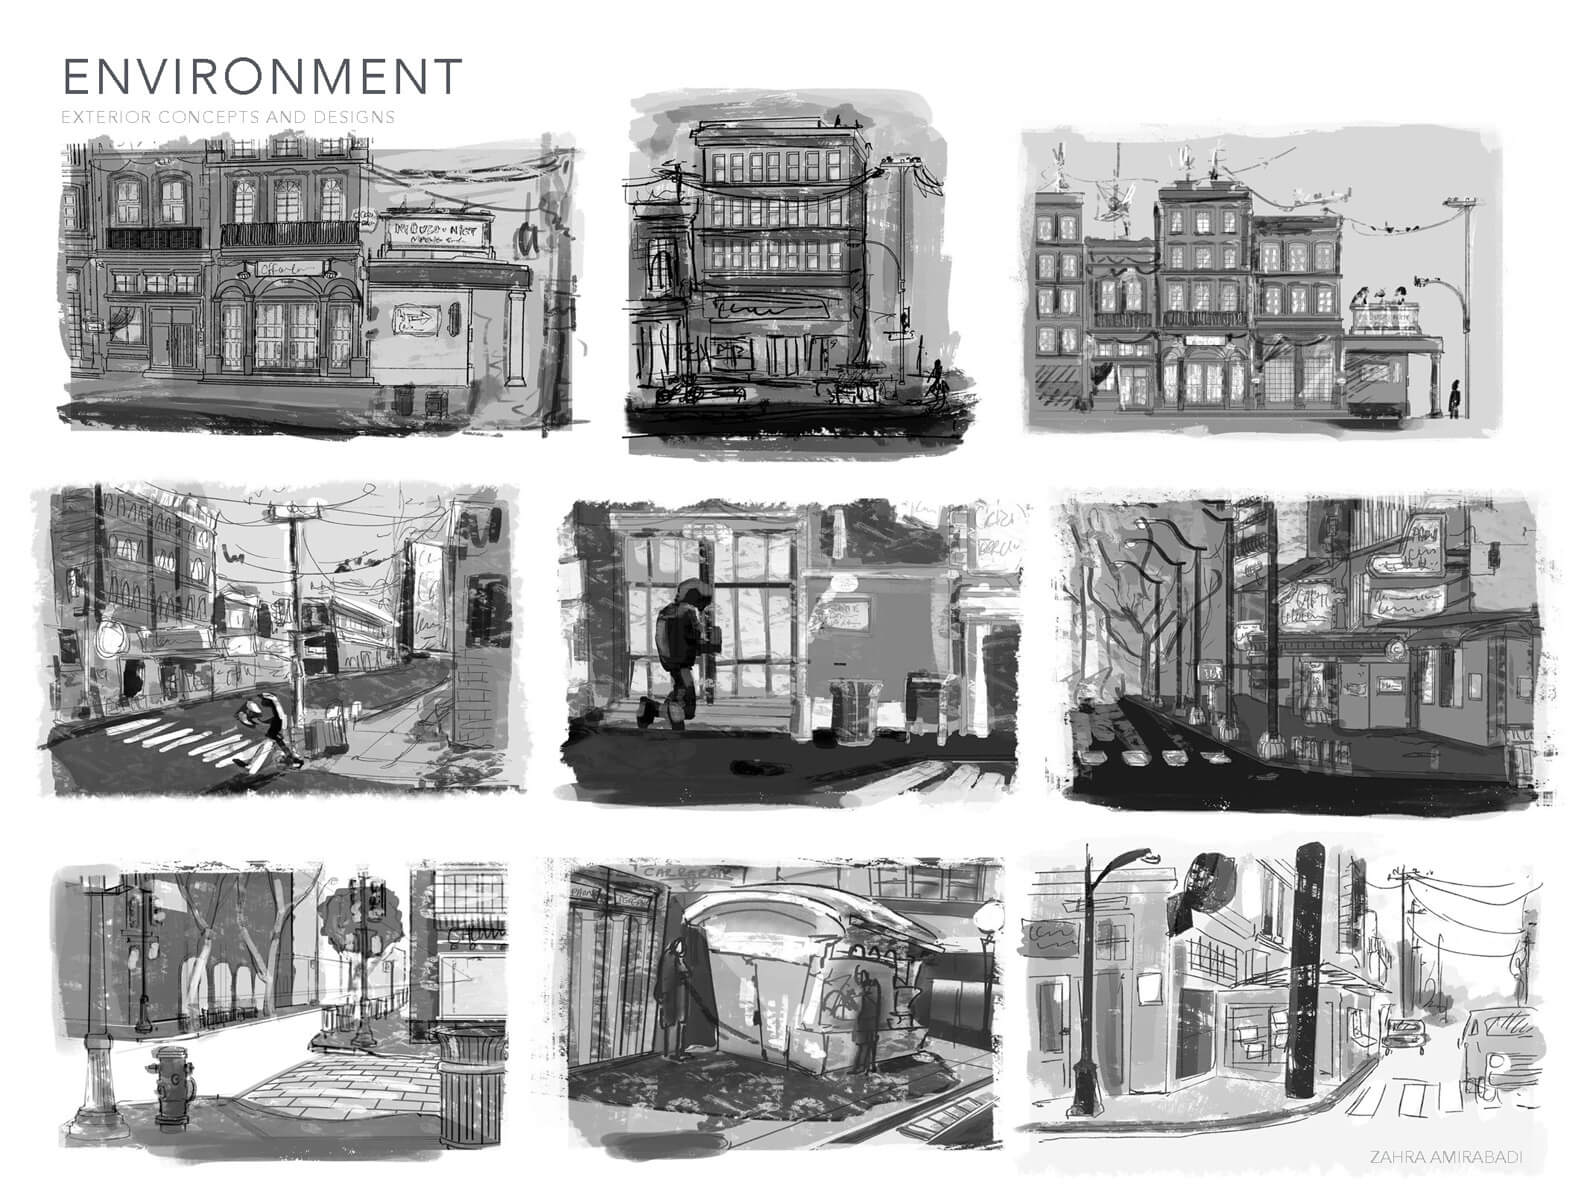 Black and white exterior concept sketches for buildings and streets in Orientation Center for the Unseen